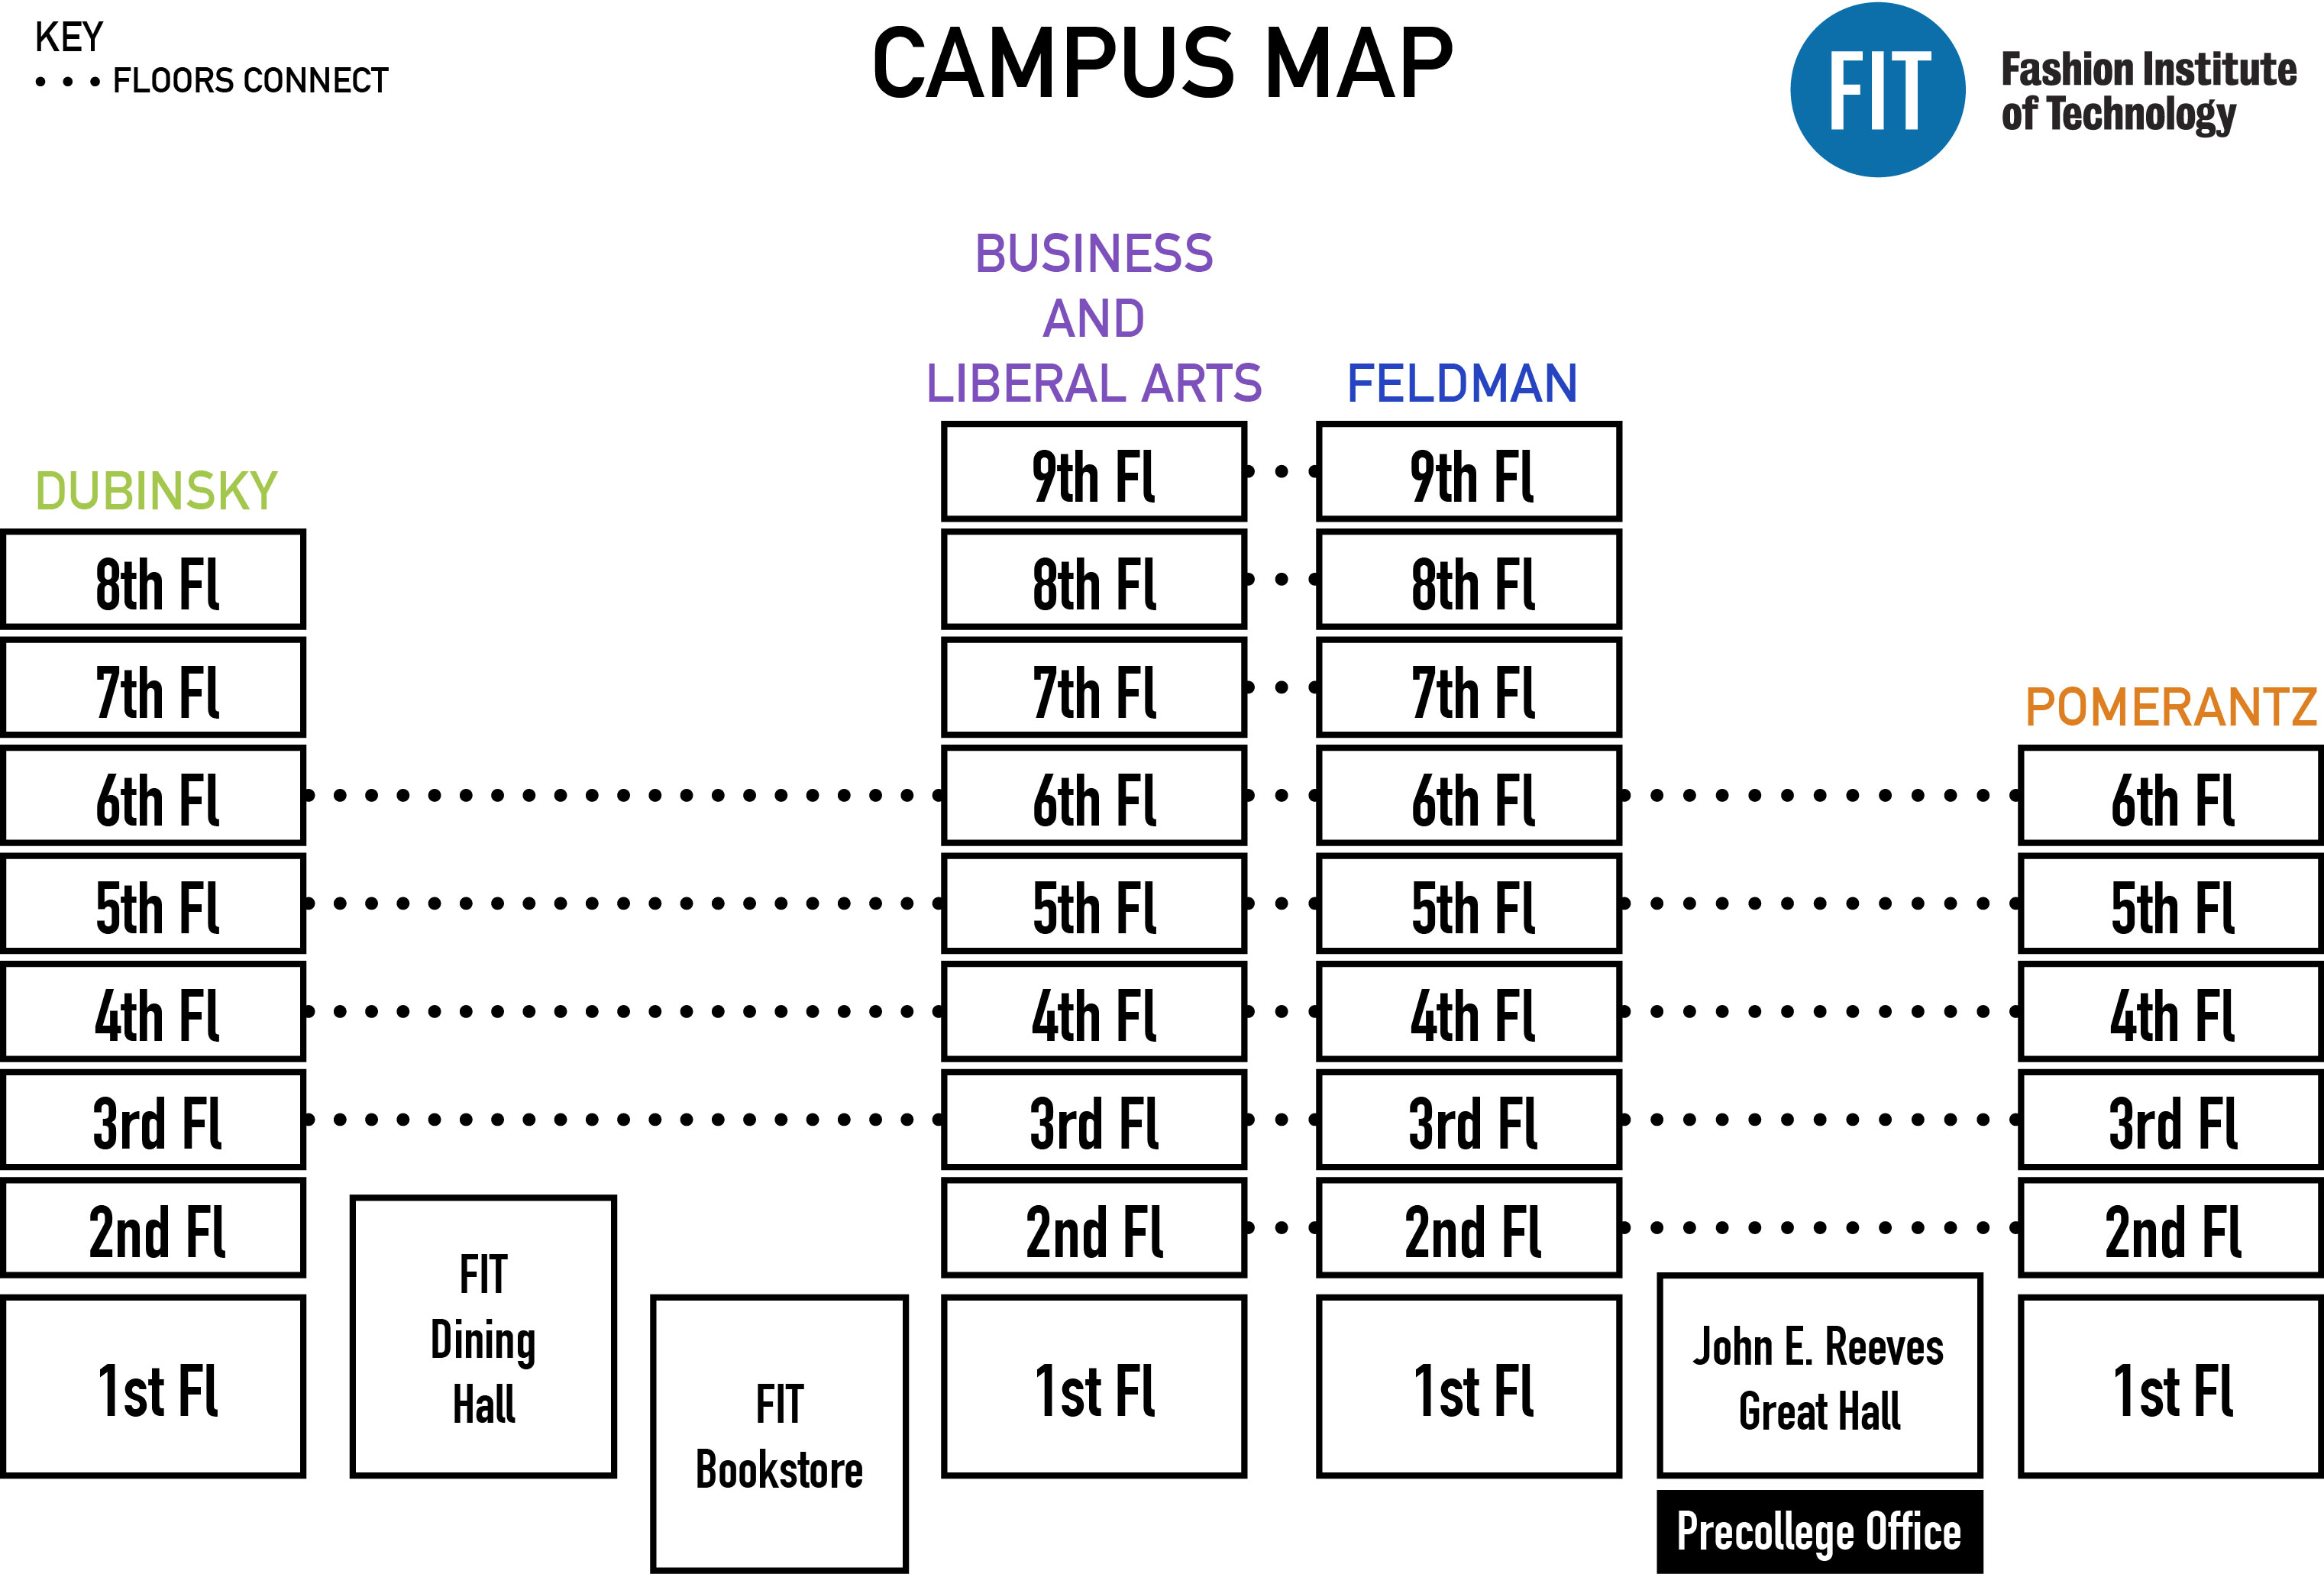 Fit Campus Map Campus Map | Fashion Institute of Technology Fit Campus Map